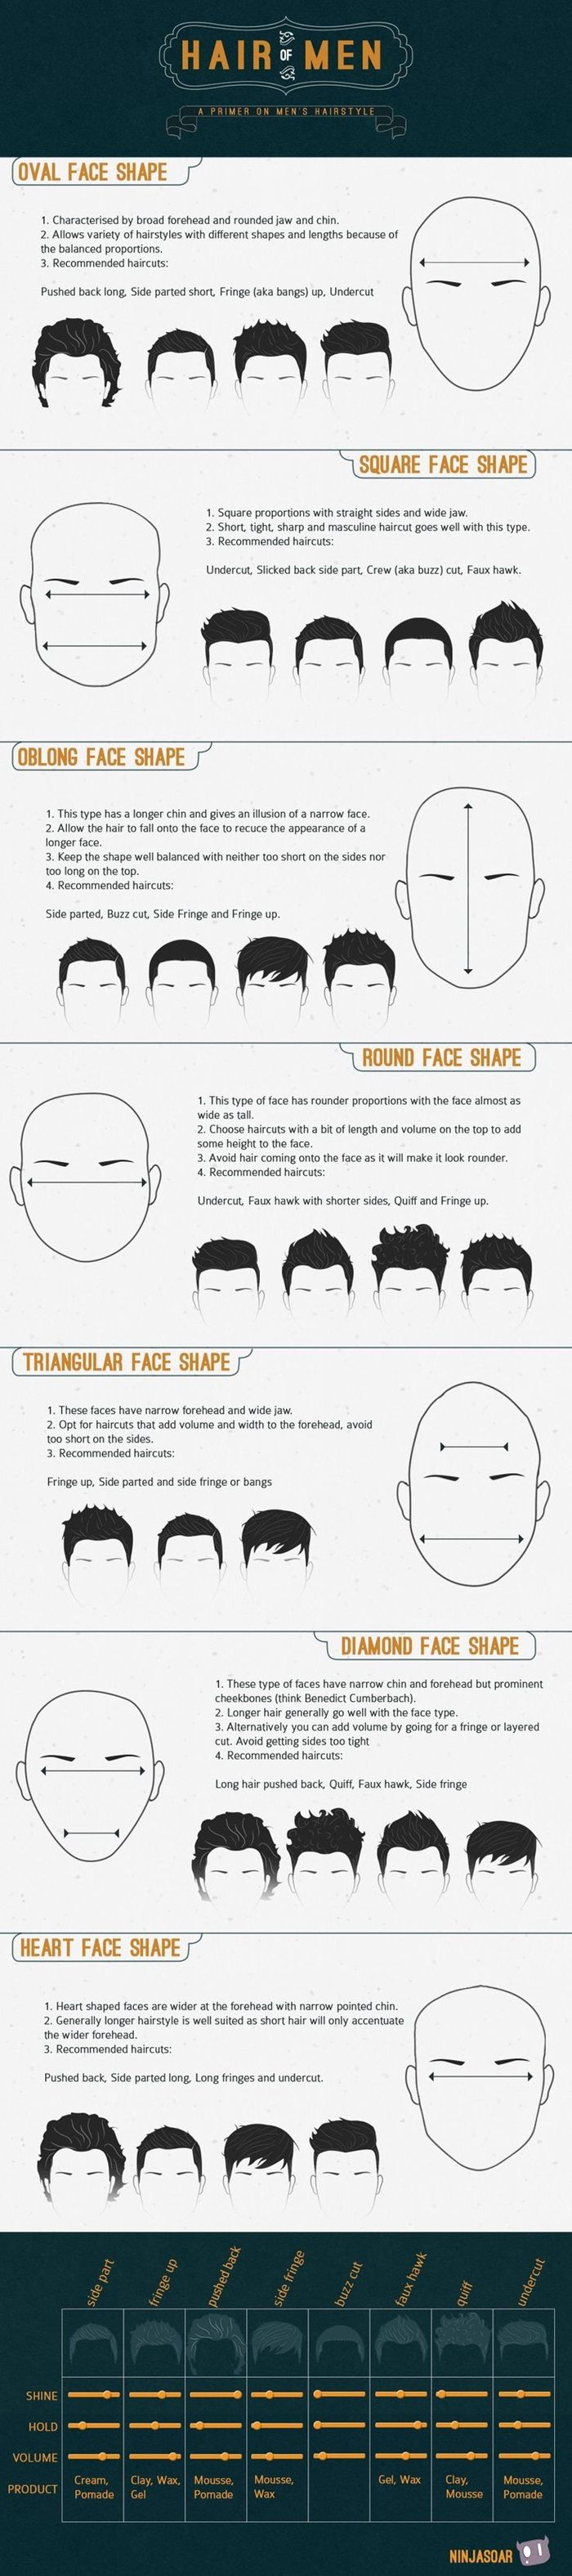 Mens haircut st louis  best dooz images on pinterest  menswear backpacks and barber